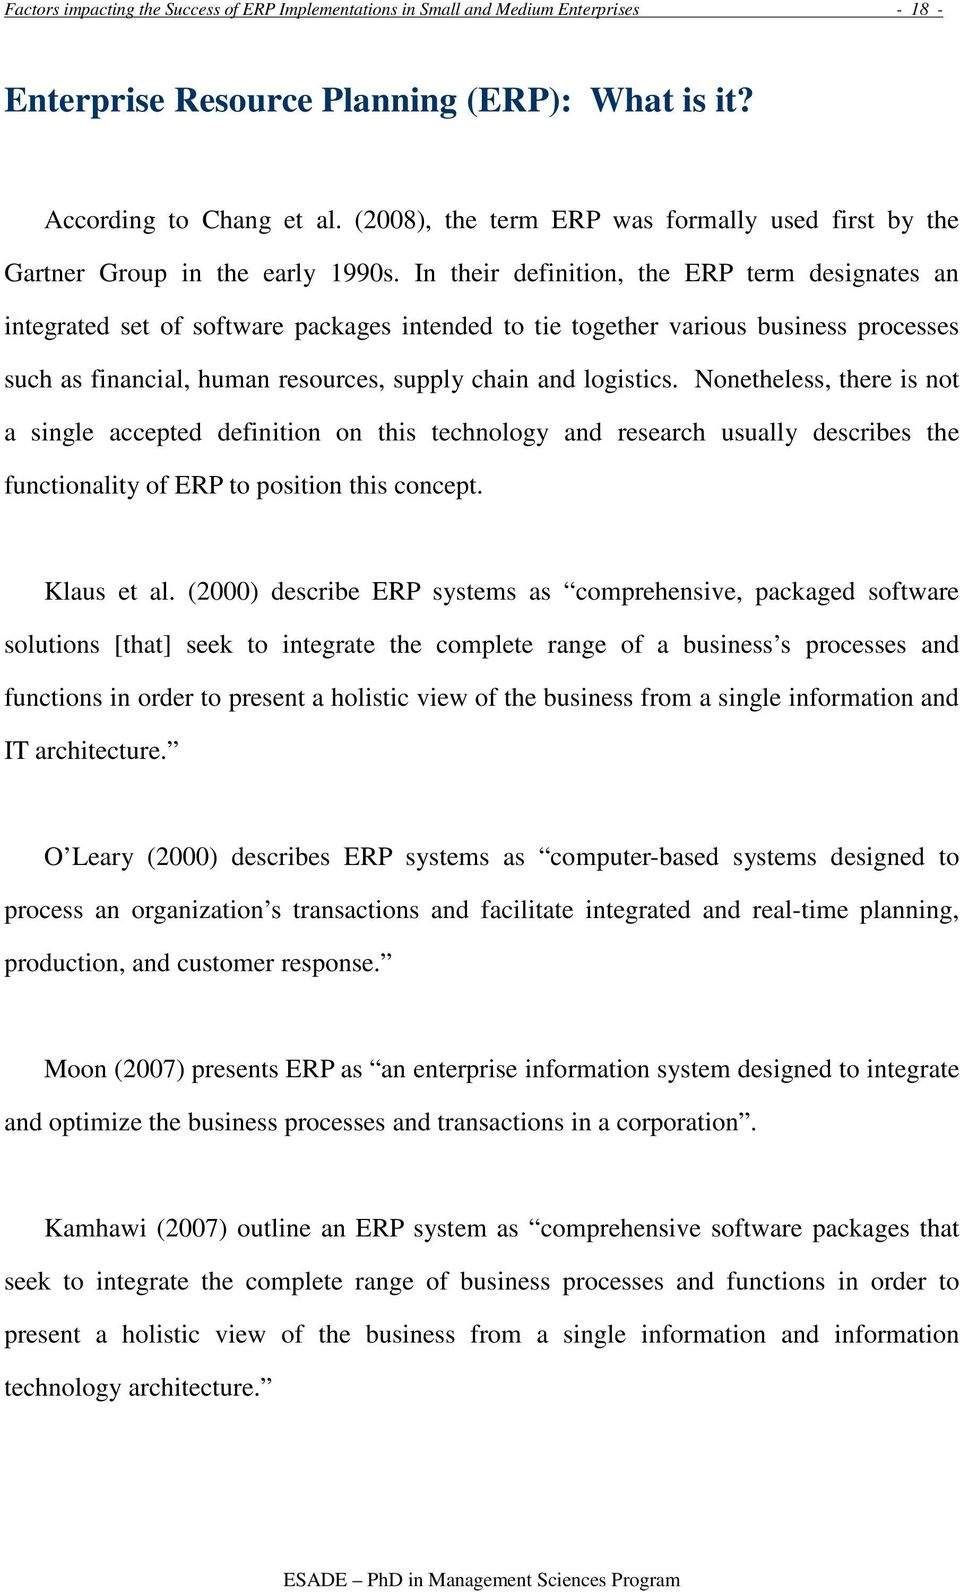 In their definition, the ERP term designates an integrated set of software packages intended to tie together various business processes such as financial, human resources, supply chain and logistics.